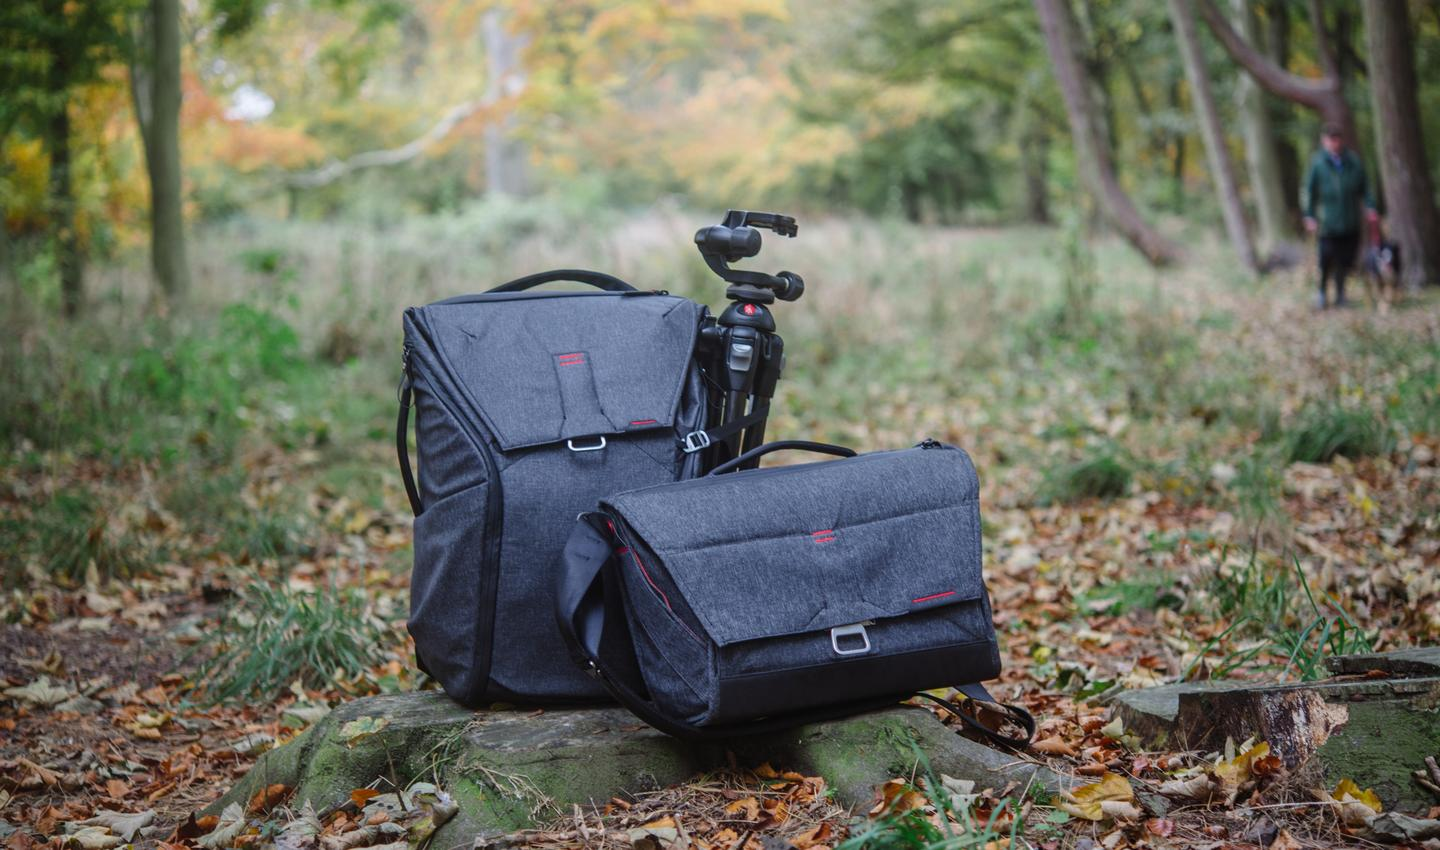 The Peak Design Everyday Backpack with the Everyday Messenger